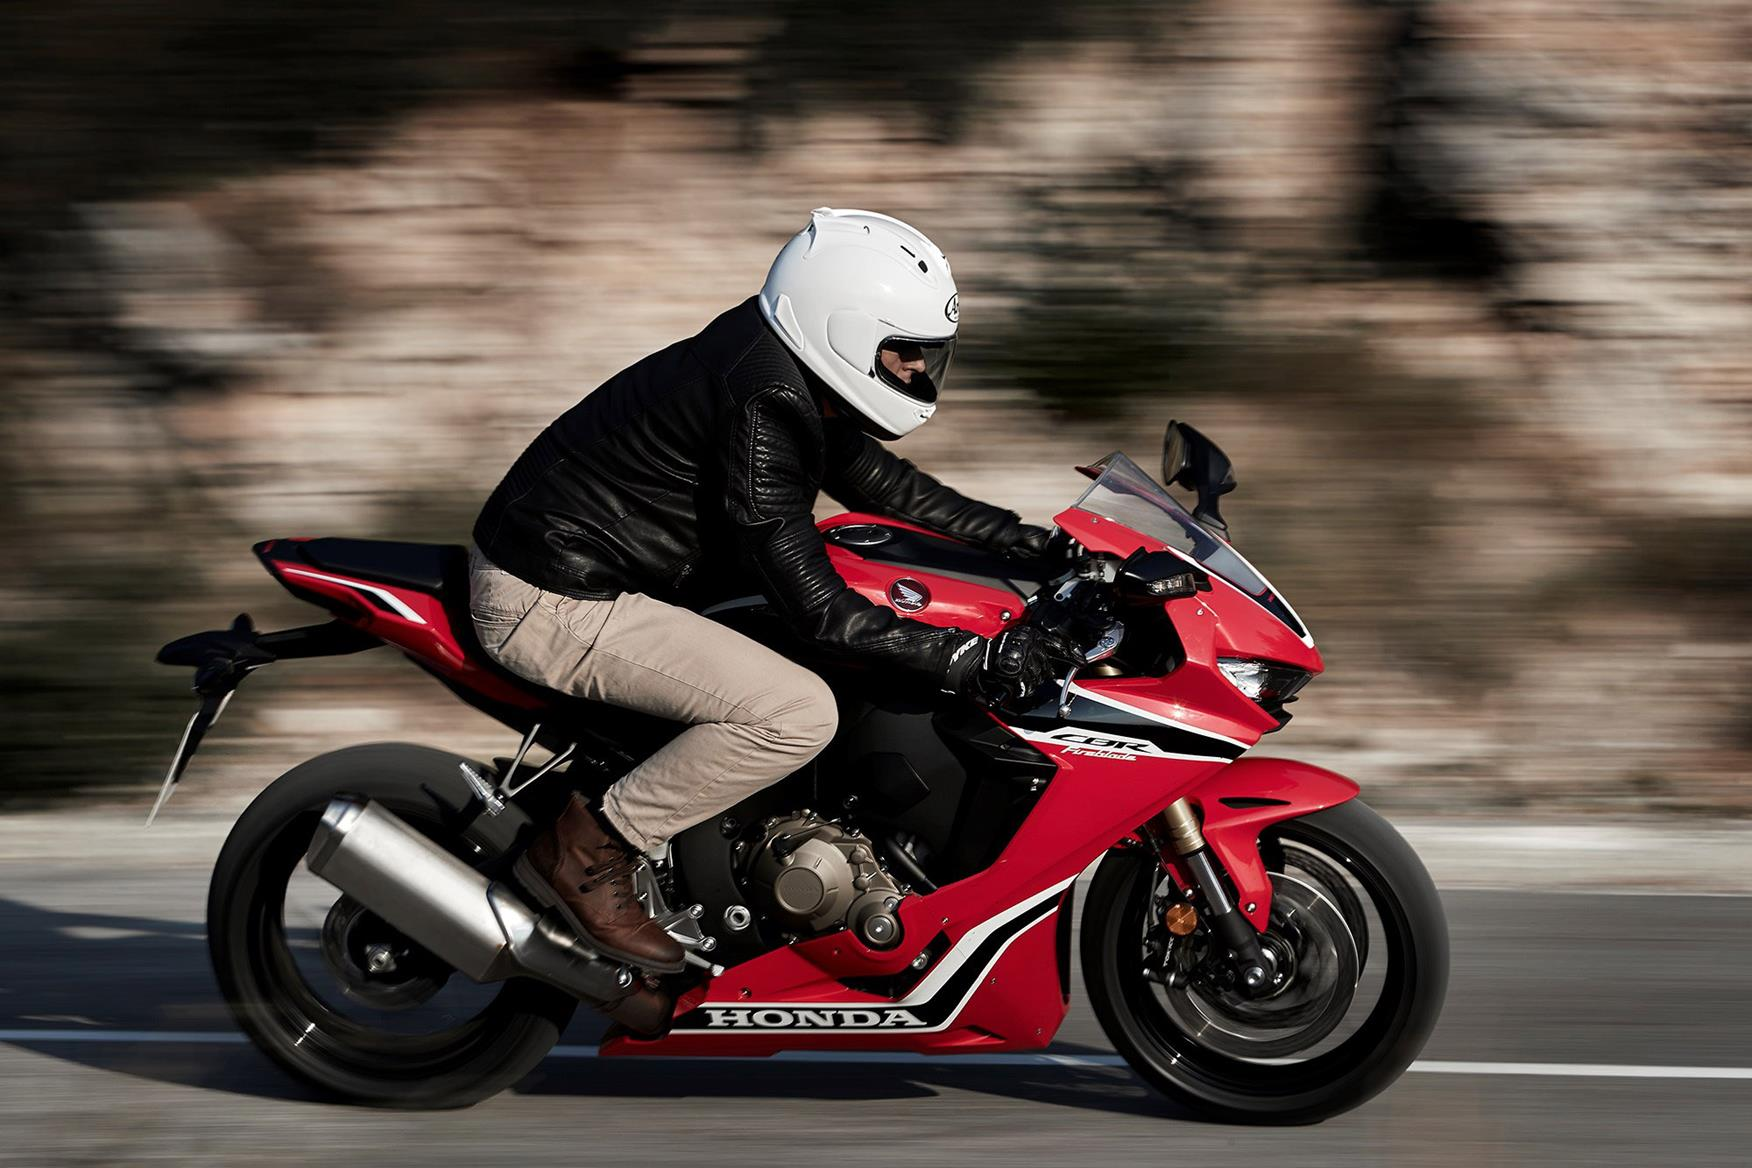 Honda's Fireblade makes a great new or used buy